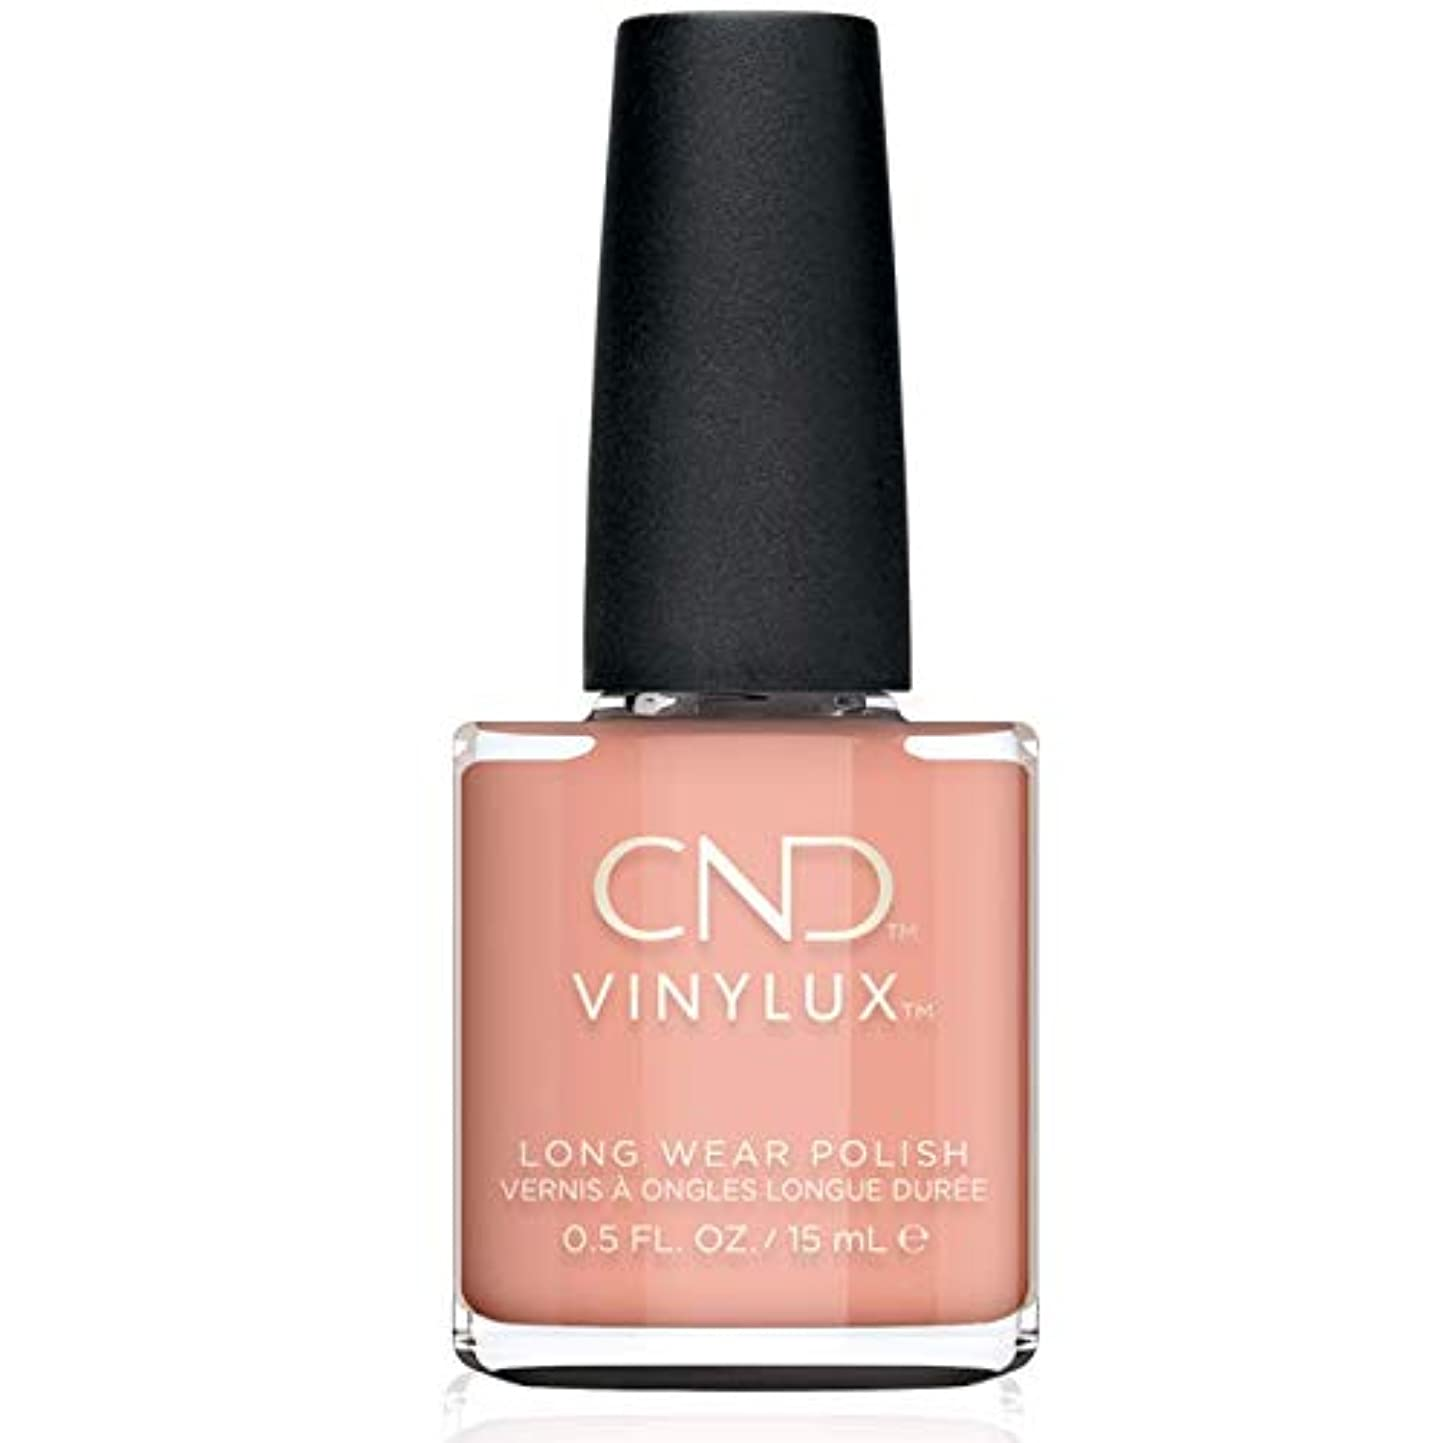 CND Vinylux - Treasured Moments Fall 2019 Collection - Baby Smile - 0.5oz / 15ml